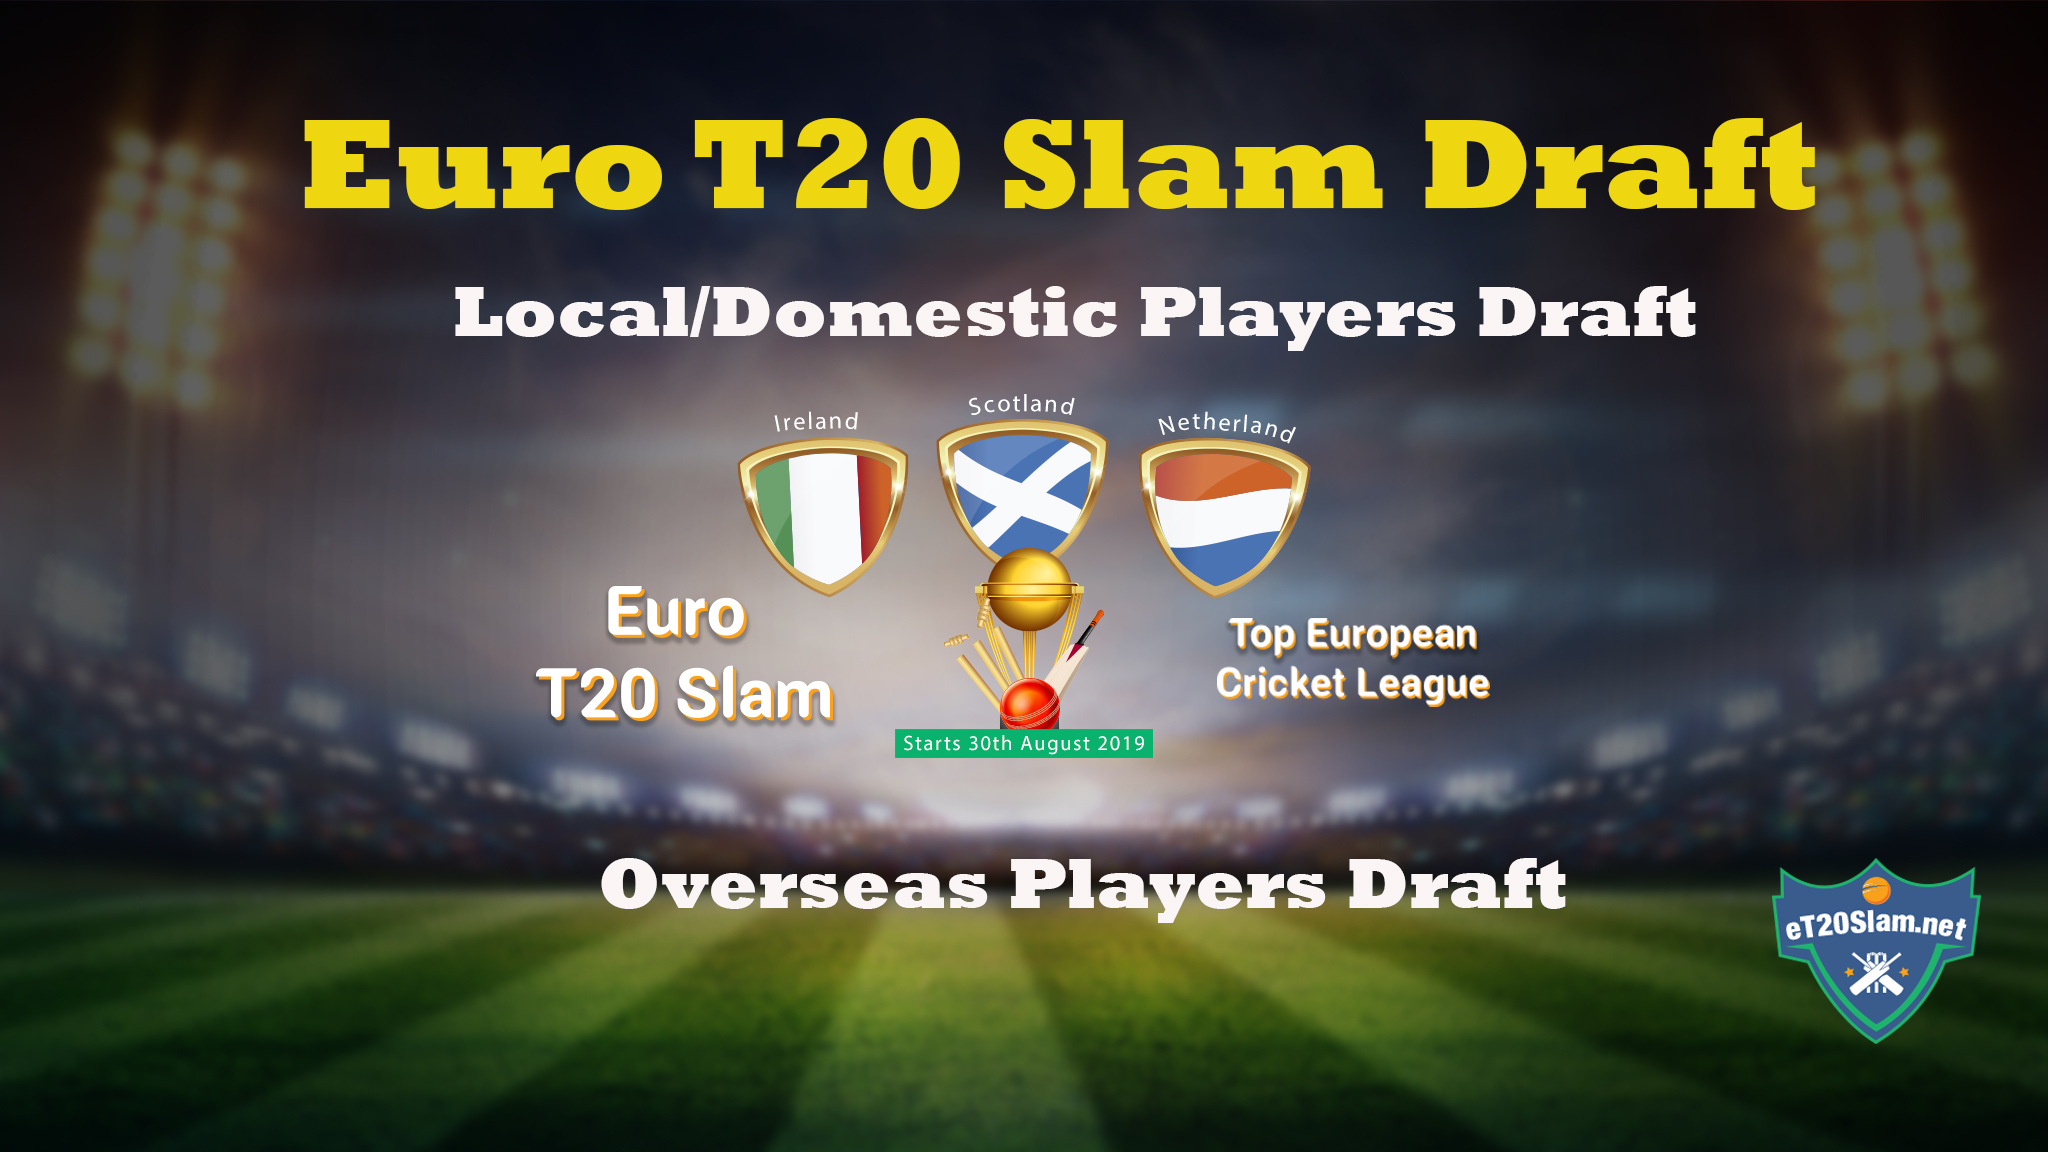 Euro T20 Slam Draft 2019 - Draft Picks For Local and Foreign Players